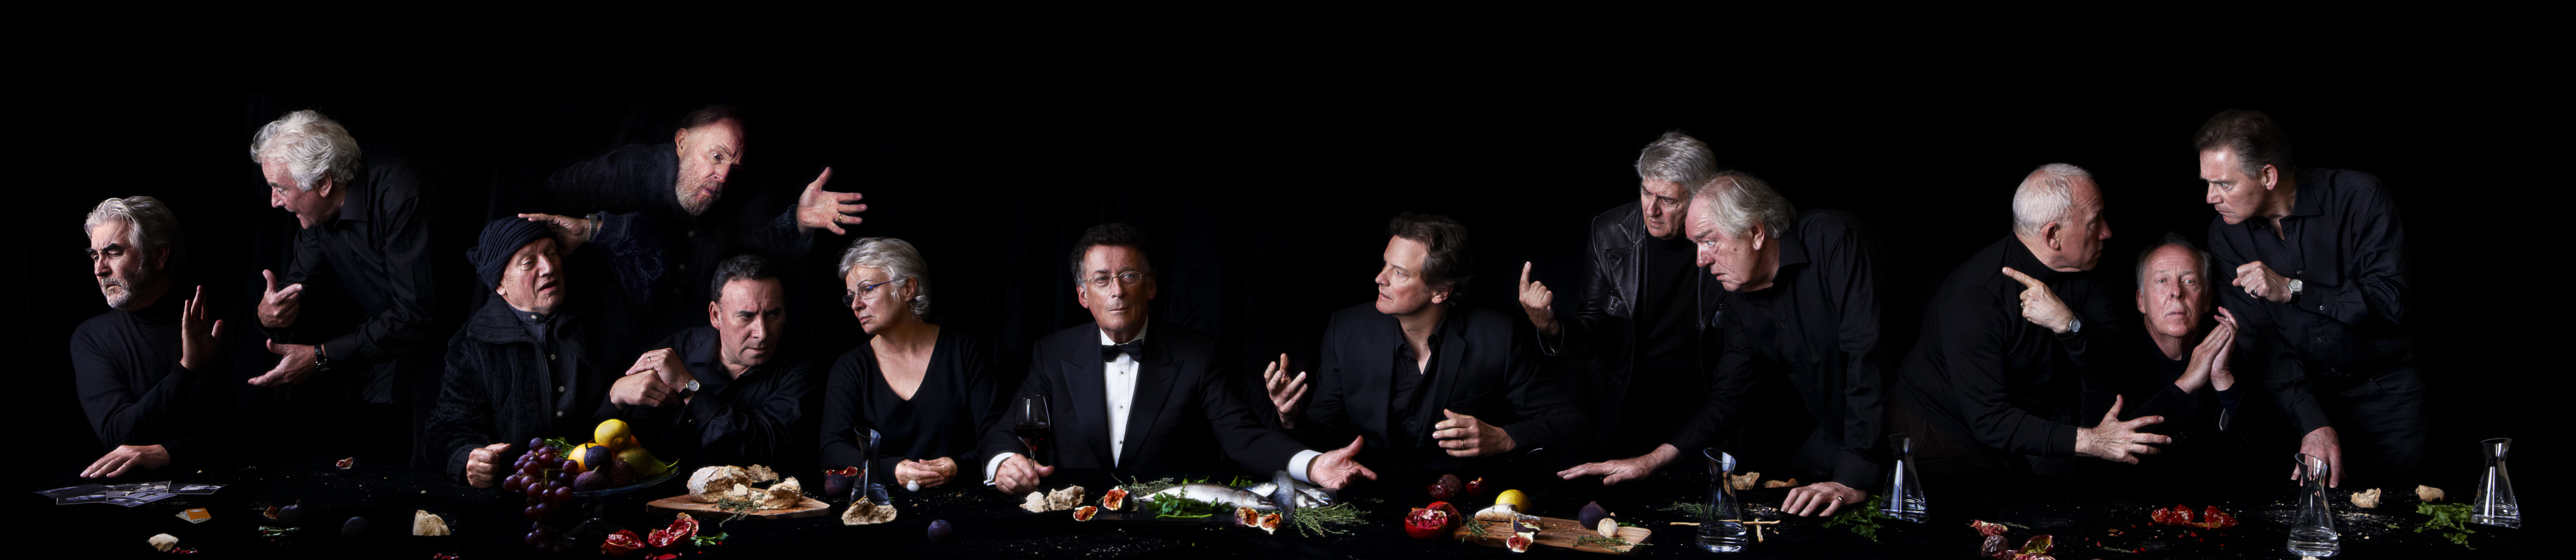 The Actors' Last Supper by Alistair Morrison